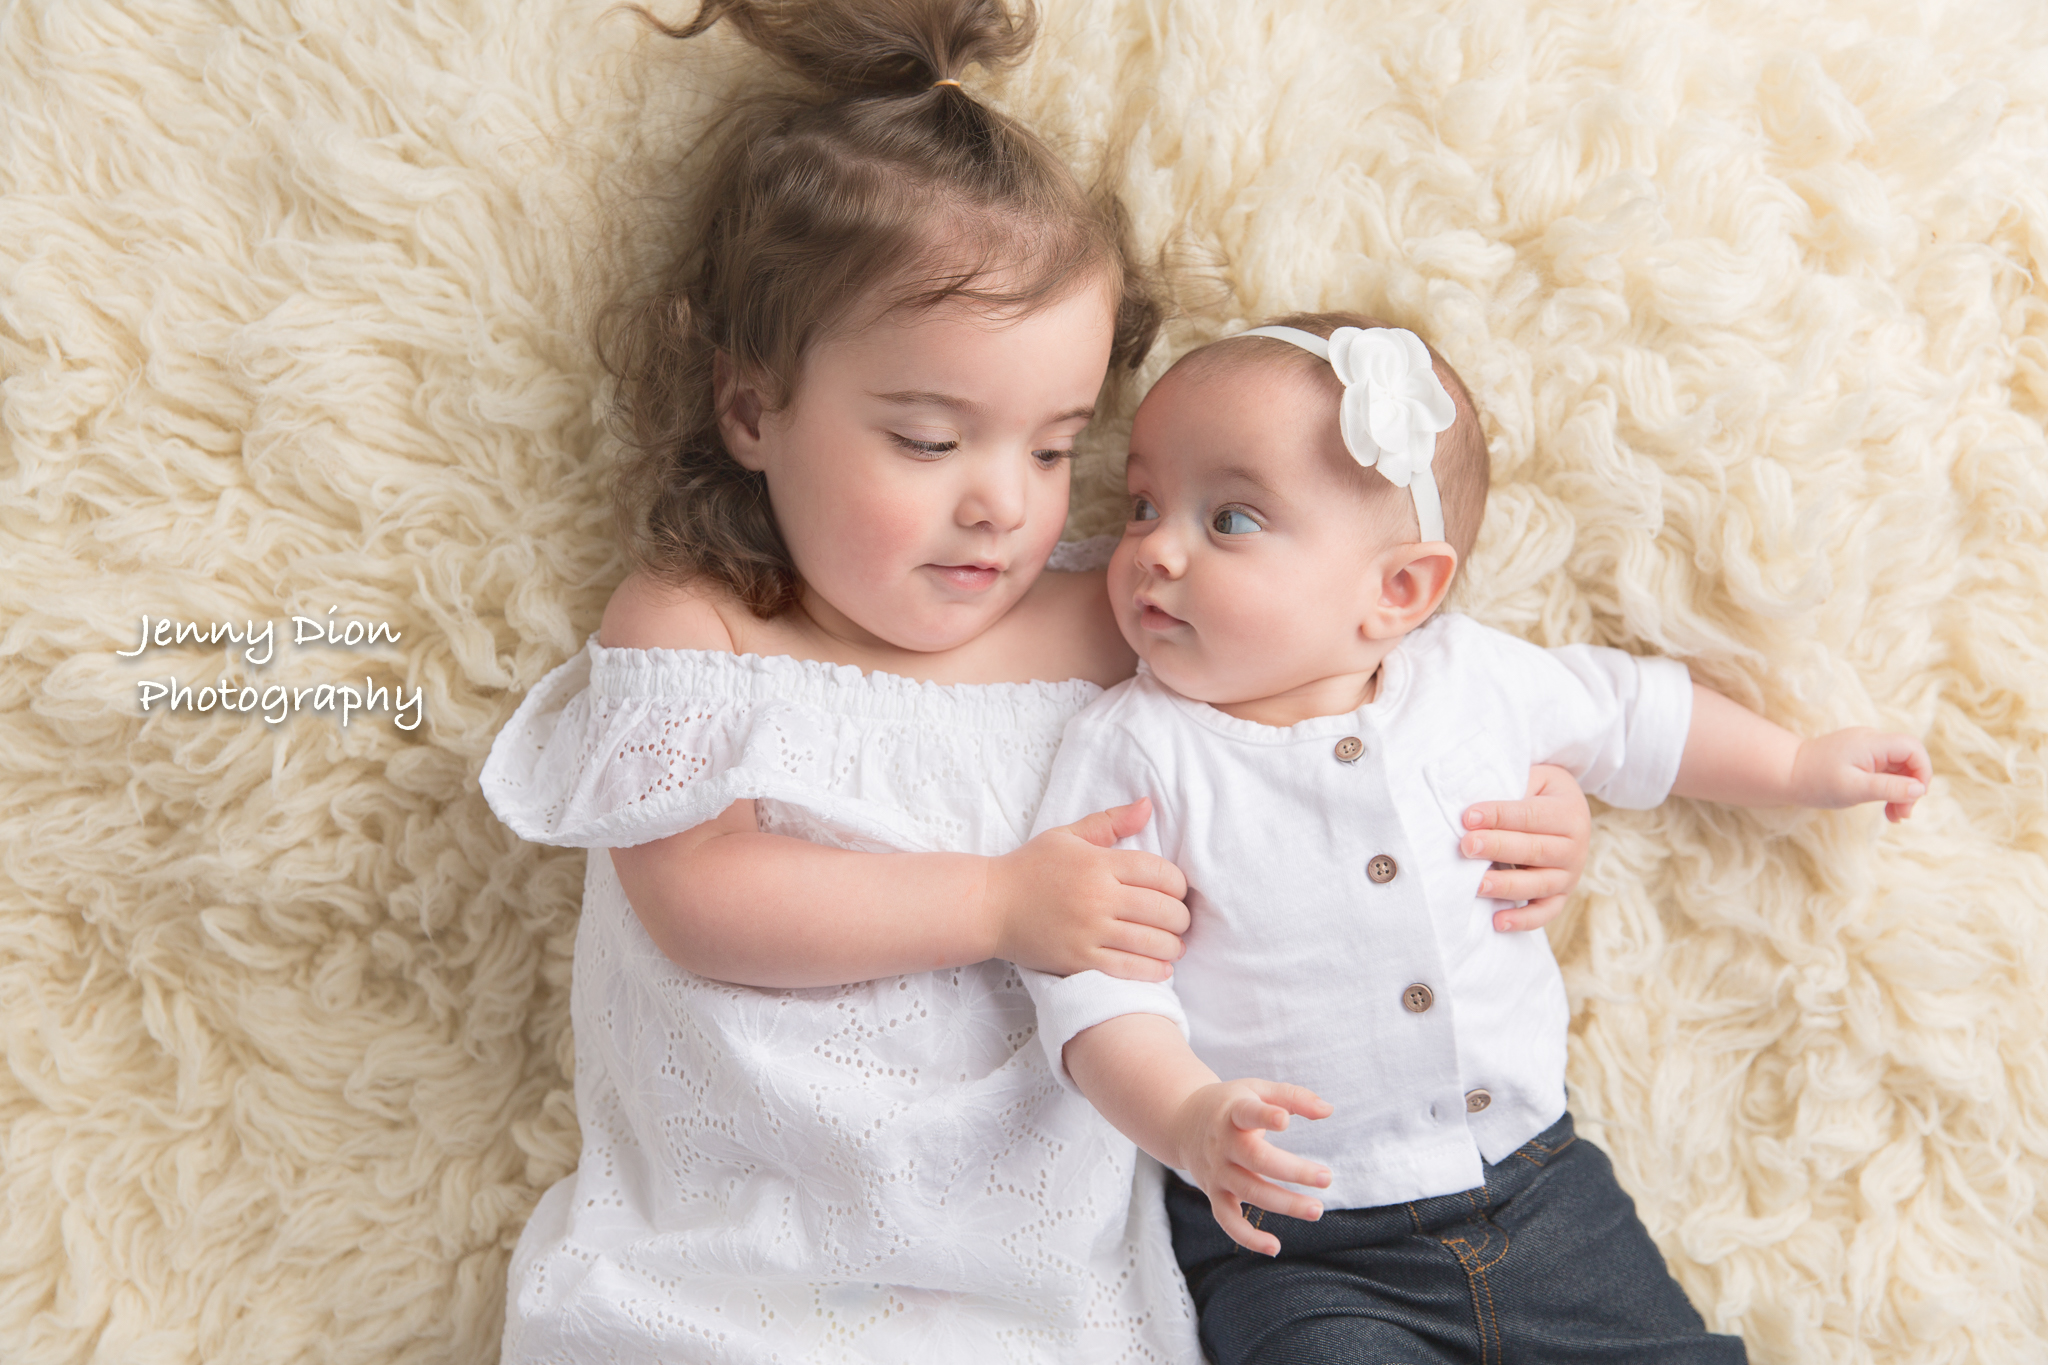 With her baby sister.